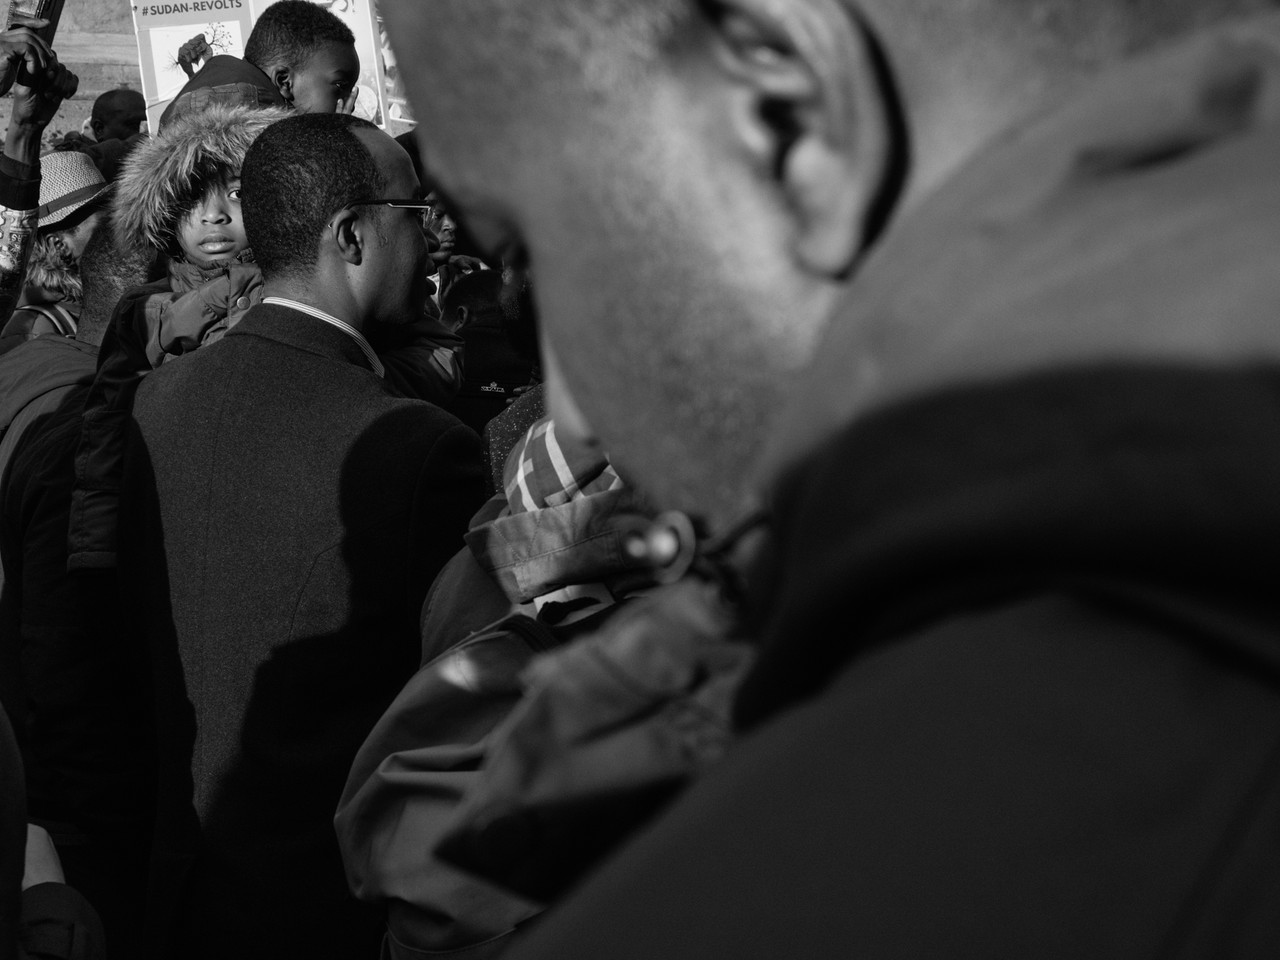 Child's eye contact at #sudan-revolts Newcastle Upon Tyne Street Photography